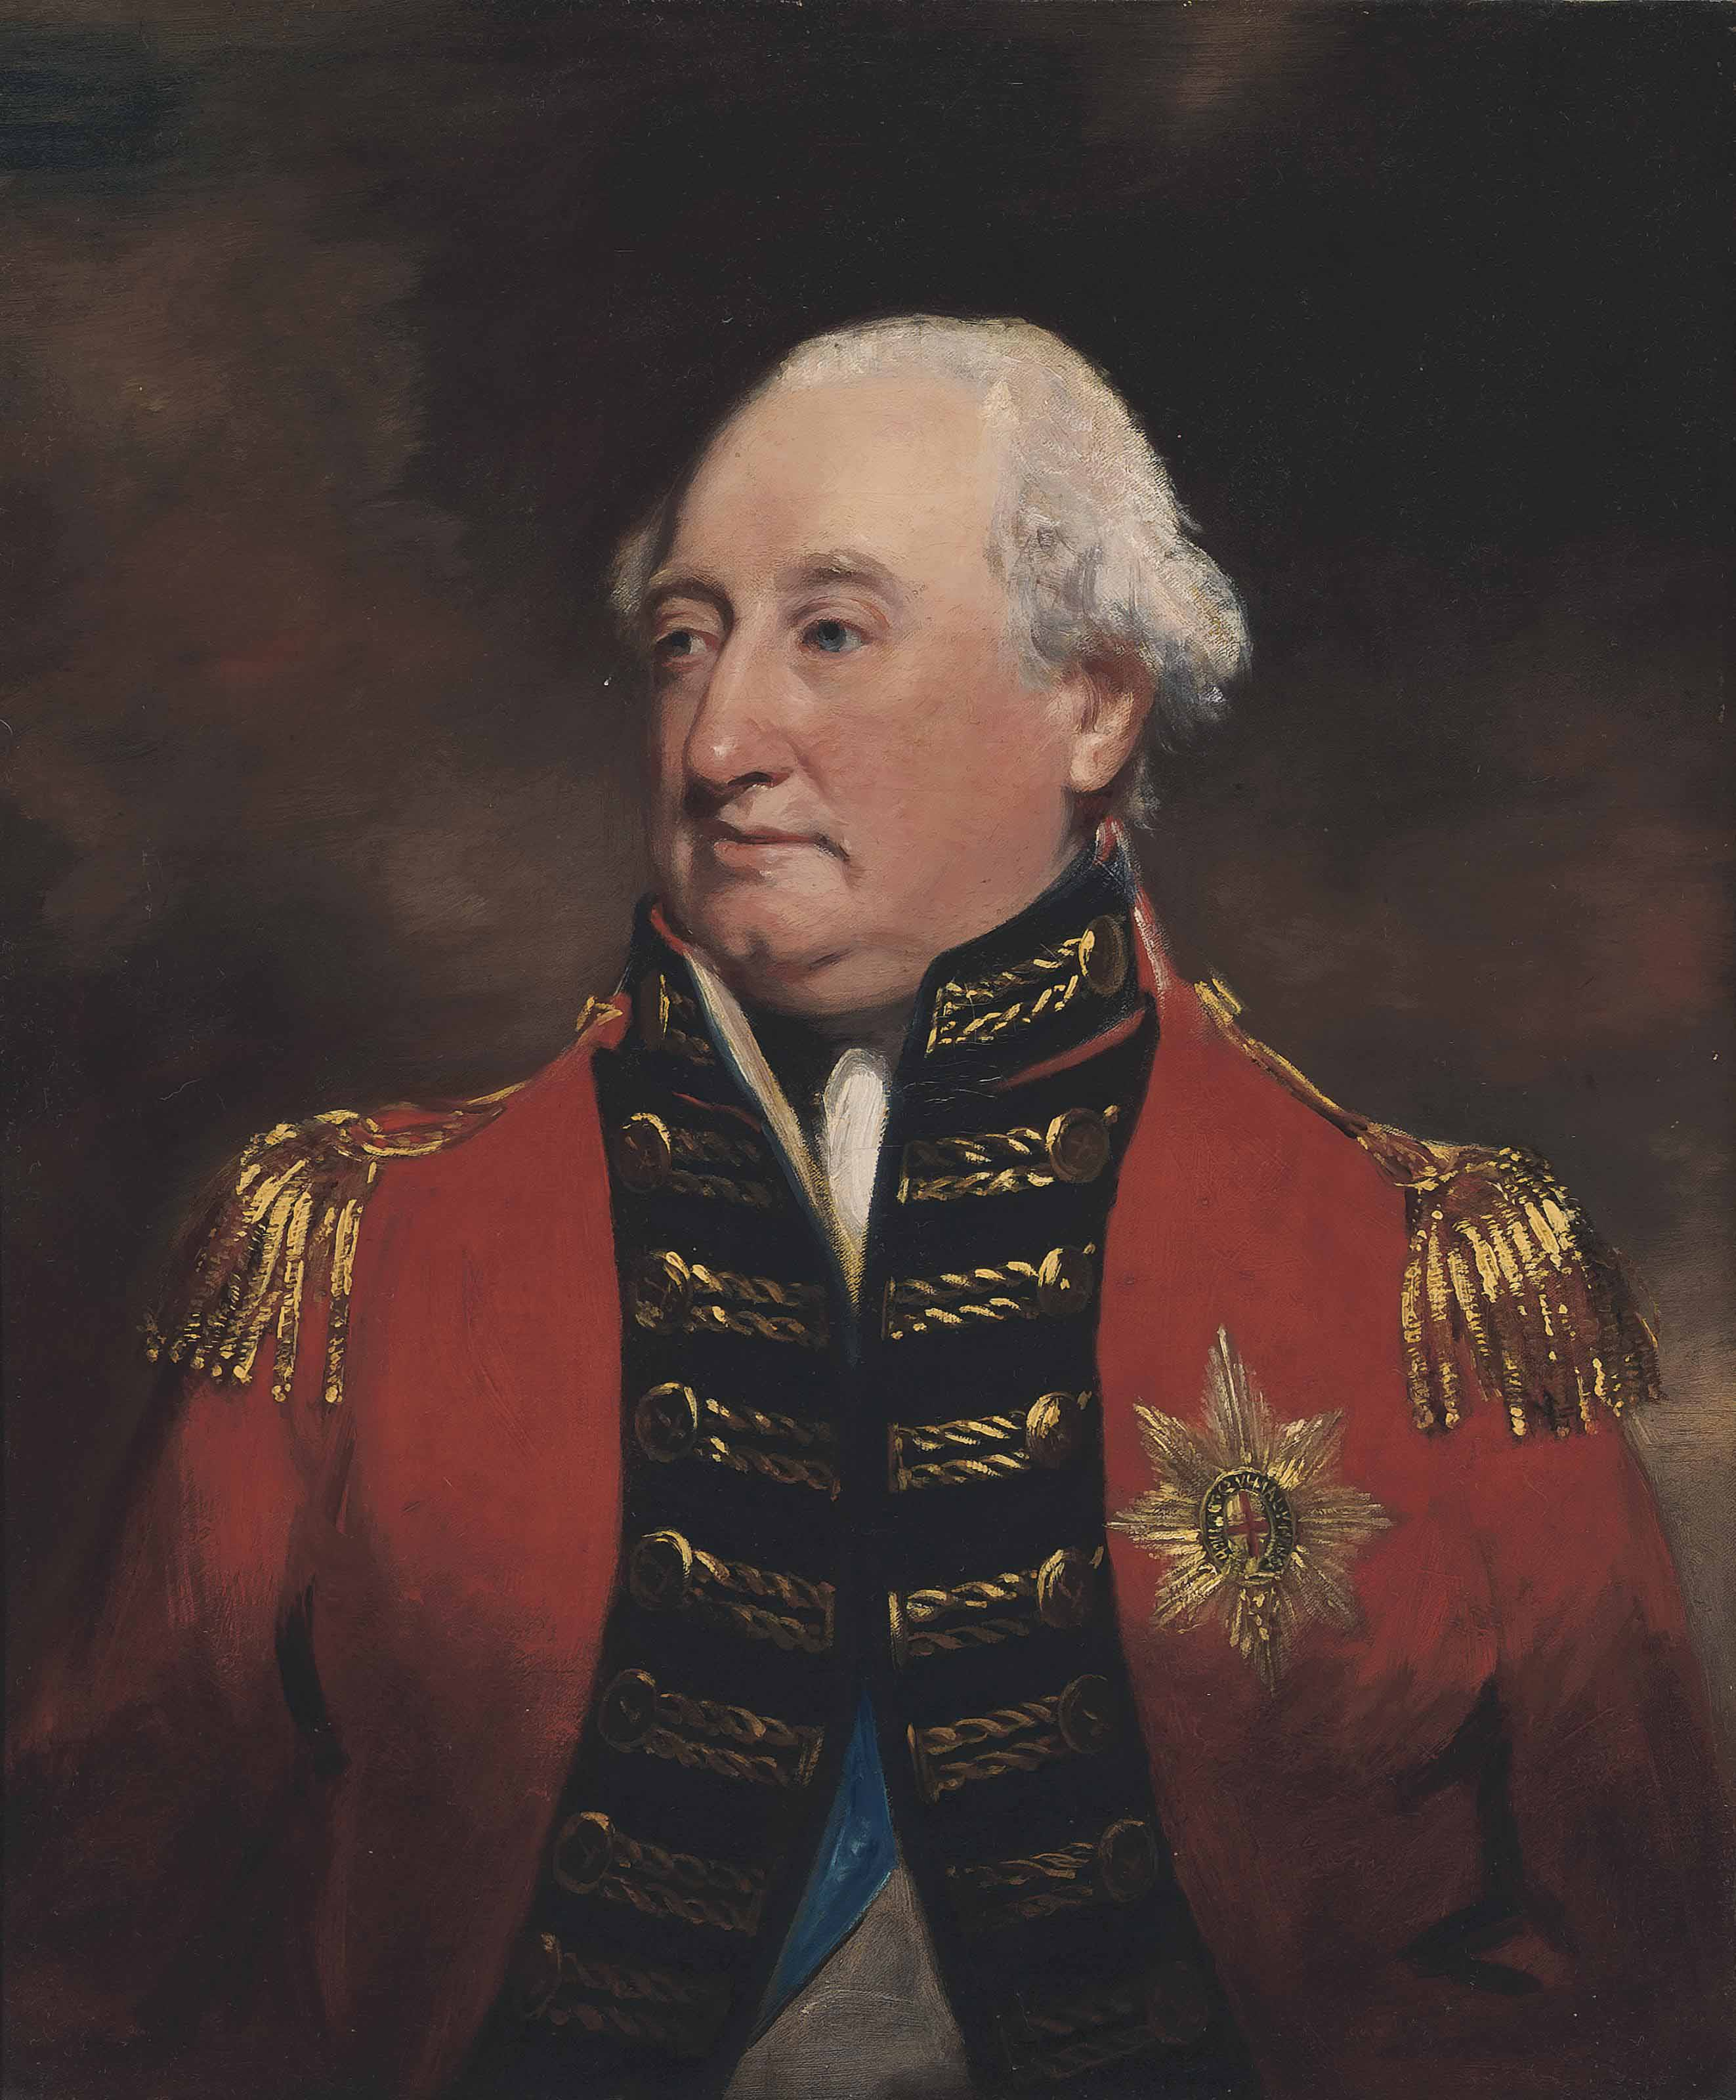 Portrait of Charles Cornwallis, 1st Marquess and 2nd Earl Cornwallis (1738-1805), in uniform with the Sash and Star of the Order of the Garter